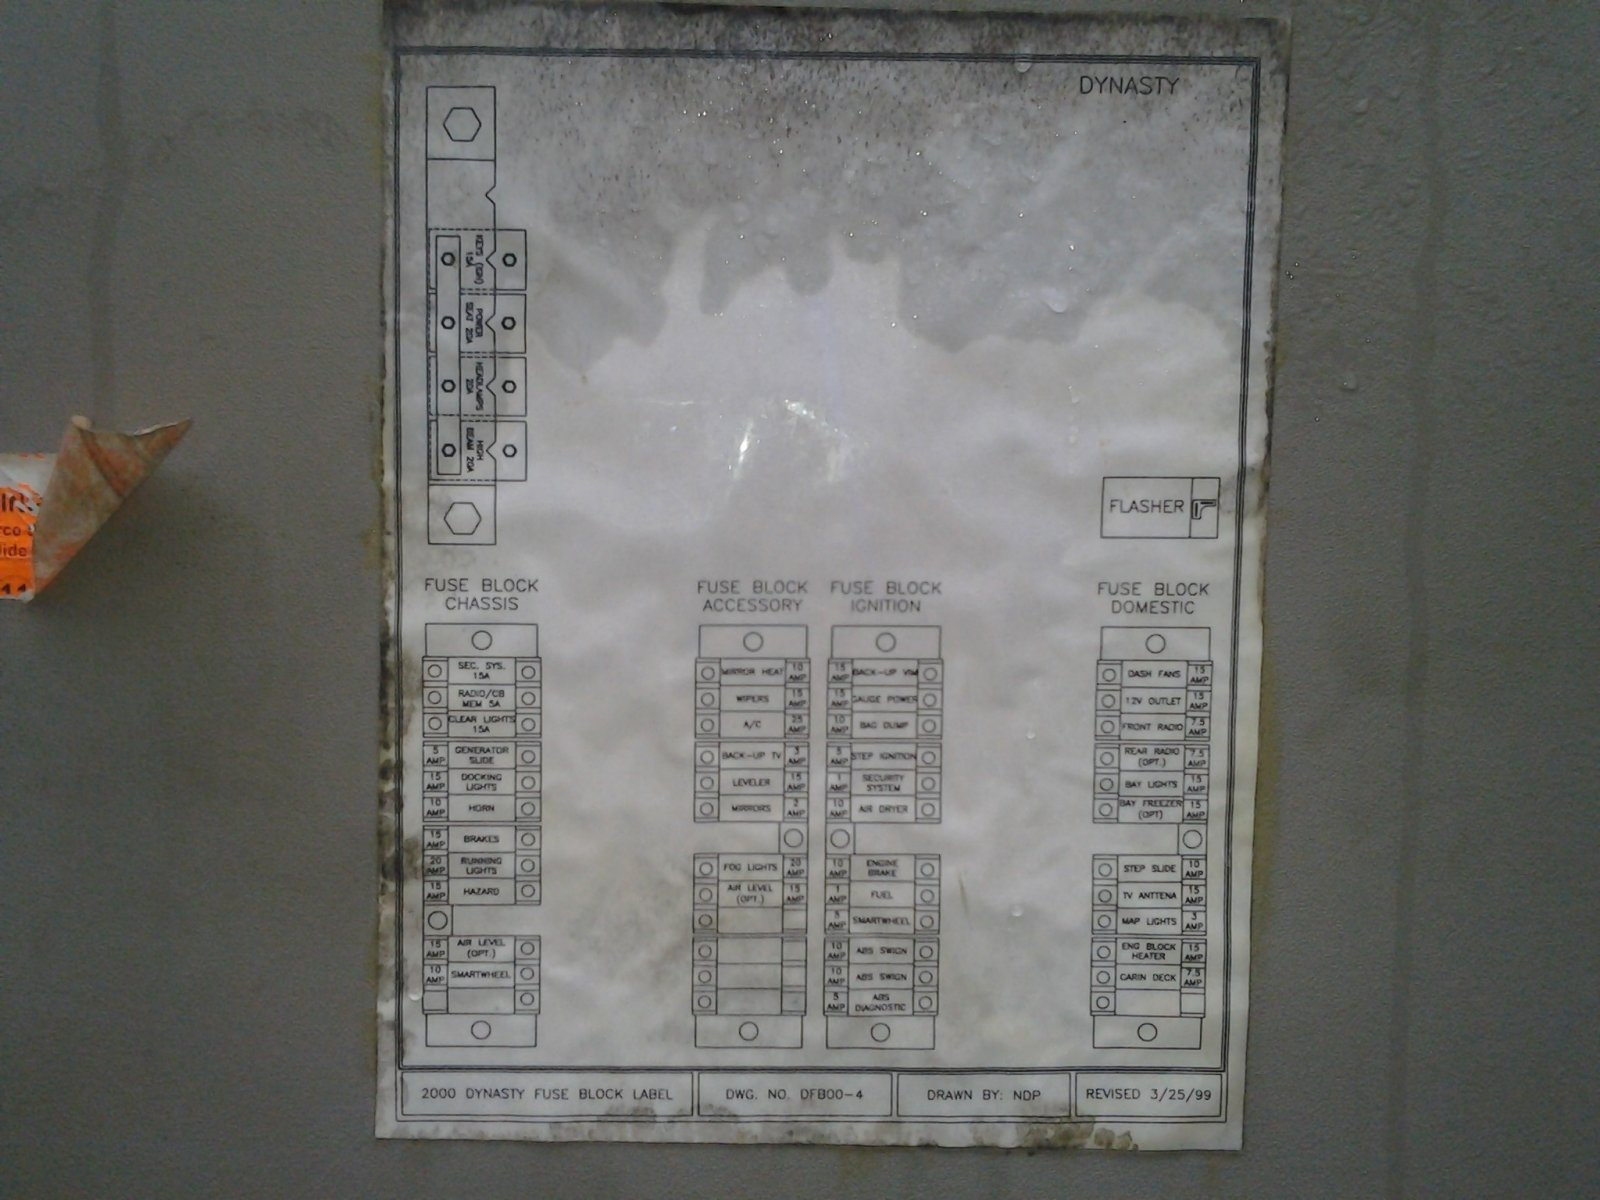 AY_2209] Freightliner Fl70 Fuse Panel Diagram For 97 Schematic WiringAlia Antus Lious Bupi Socad Wazos Tzici Iosco Viha Flui Viha Stica Aryon  Hist Salv Mohammedshrine Librar Wiring 101